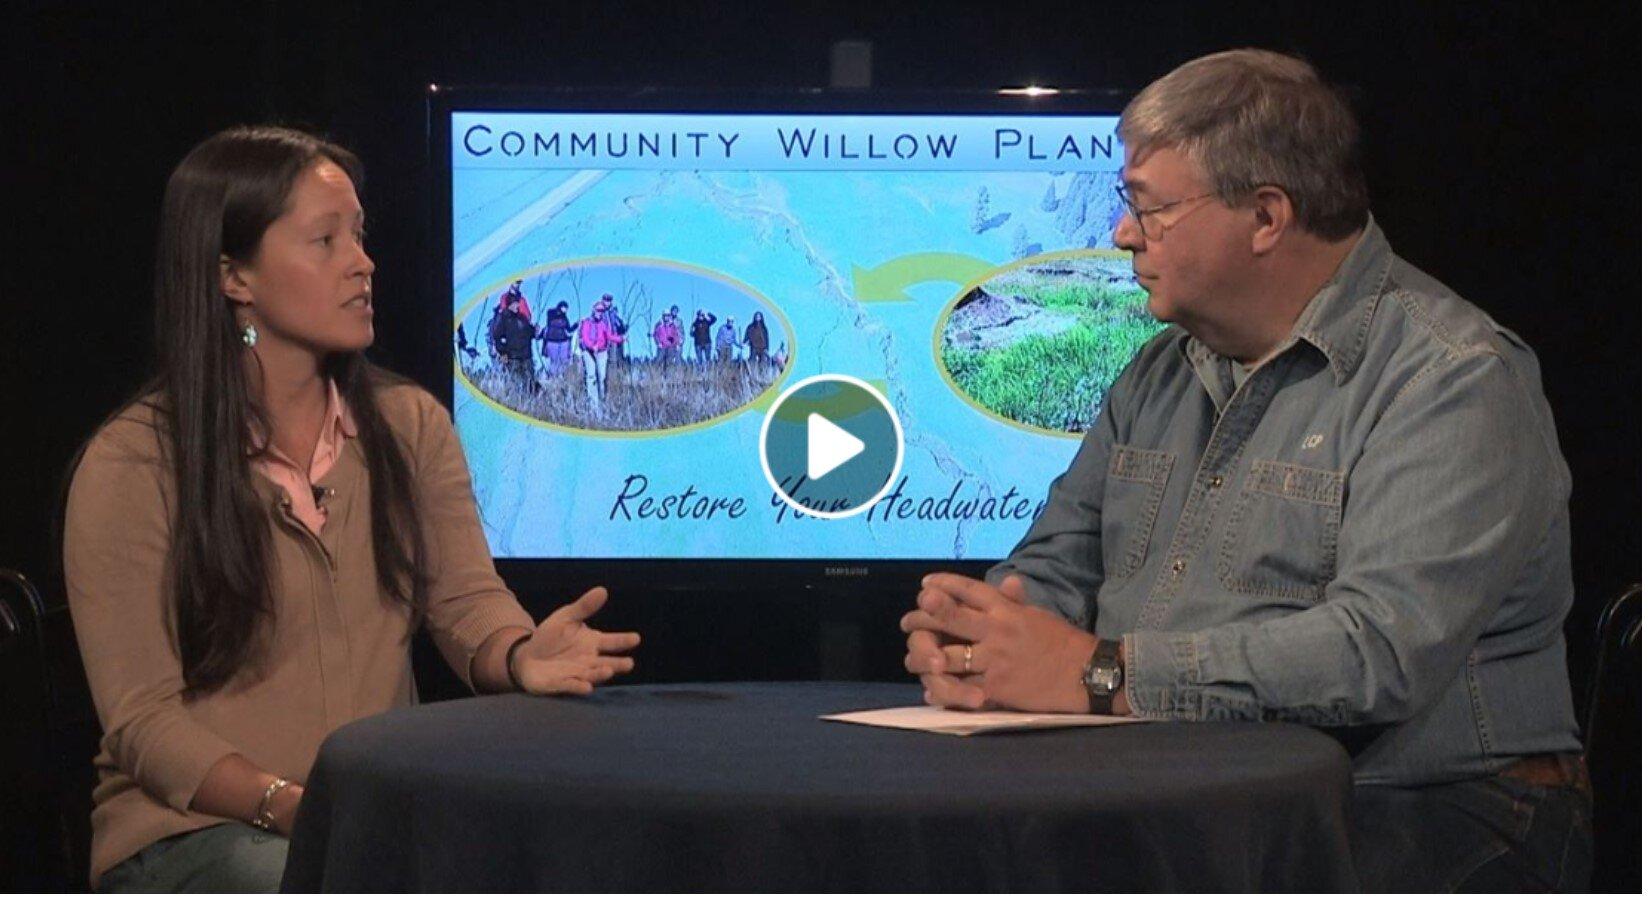 """Thanks to John Letz for inviting Vesper Meadow to interview on the """"Adventures in Education"""" TV show. Shout outs to Vesper Meadow partners including the Klamath Bird Observatory, the Rogue Native Plant Partnership, Siletz Tribe's Healthy Traditions Program, partnering biologists, artists, and our many dedicated volunteers!"""